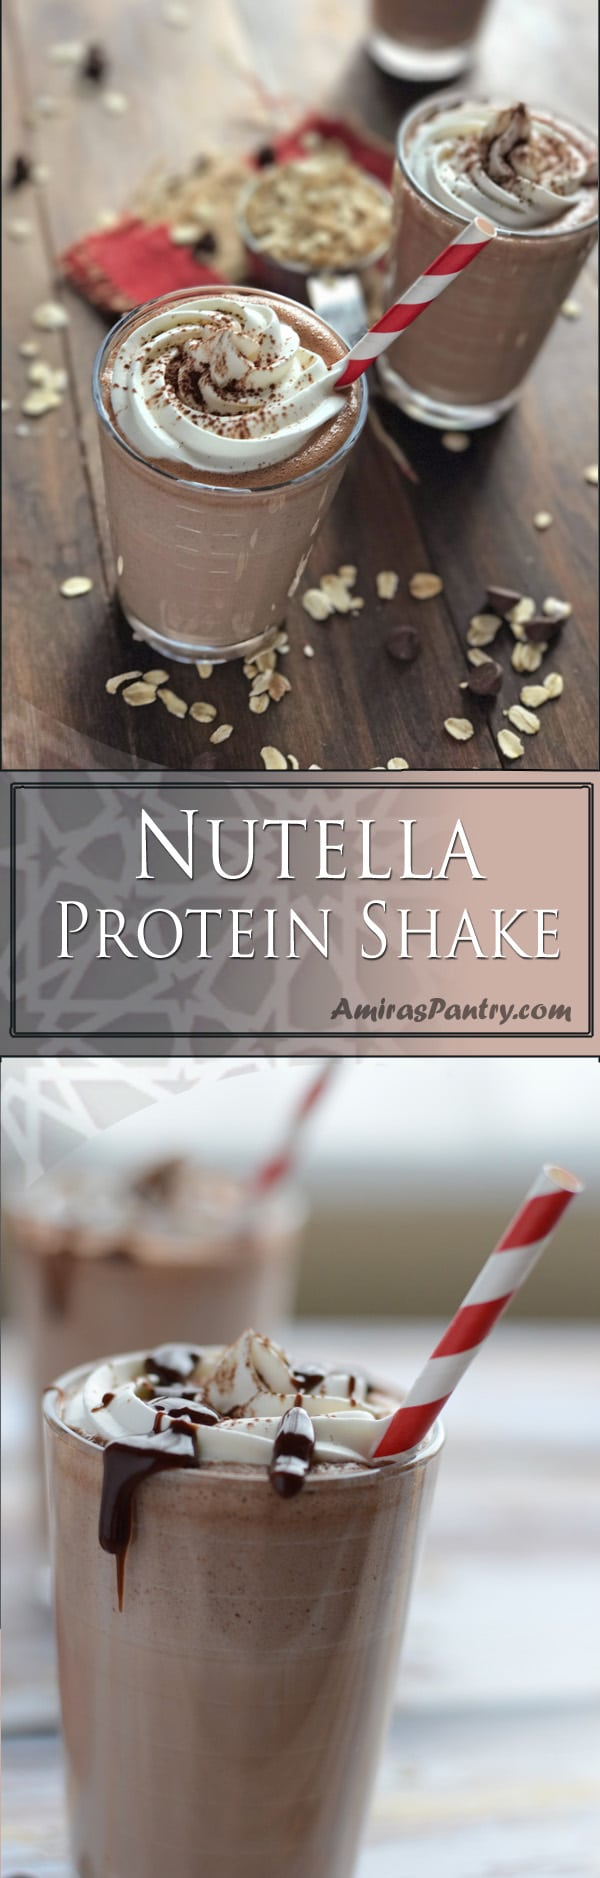 An infograph for Nutella protein shake recipe